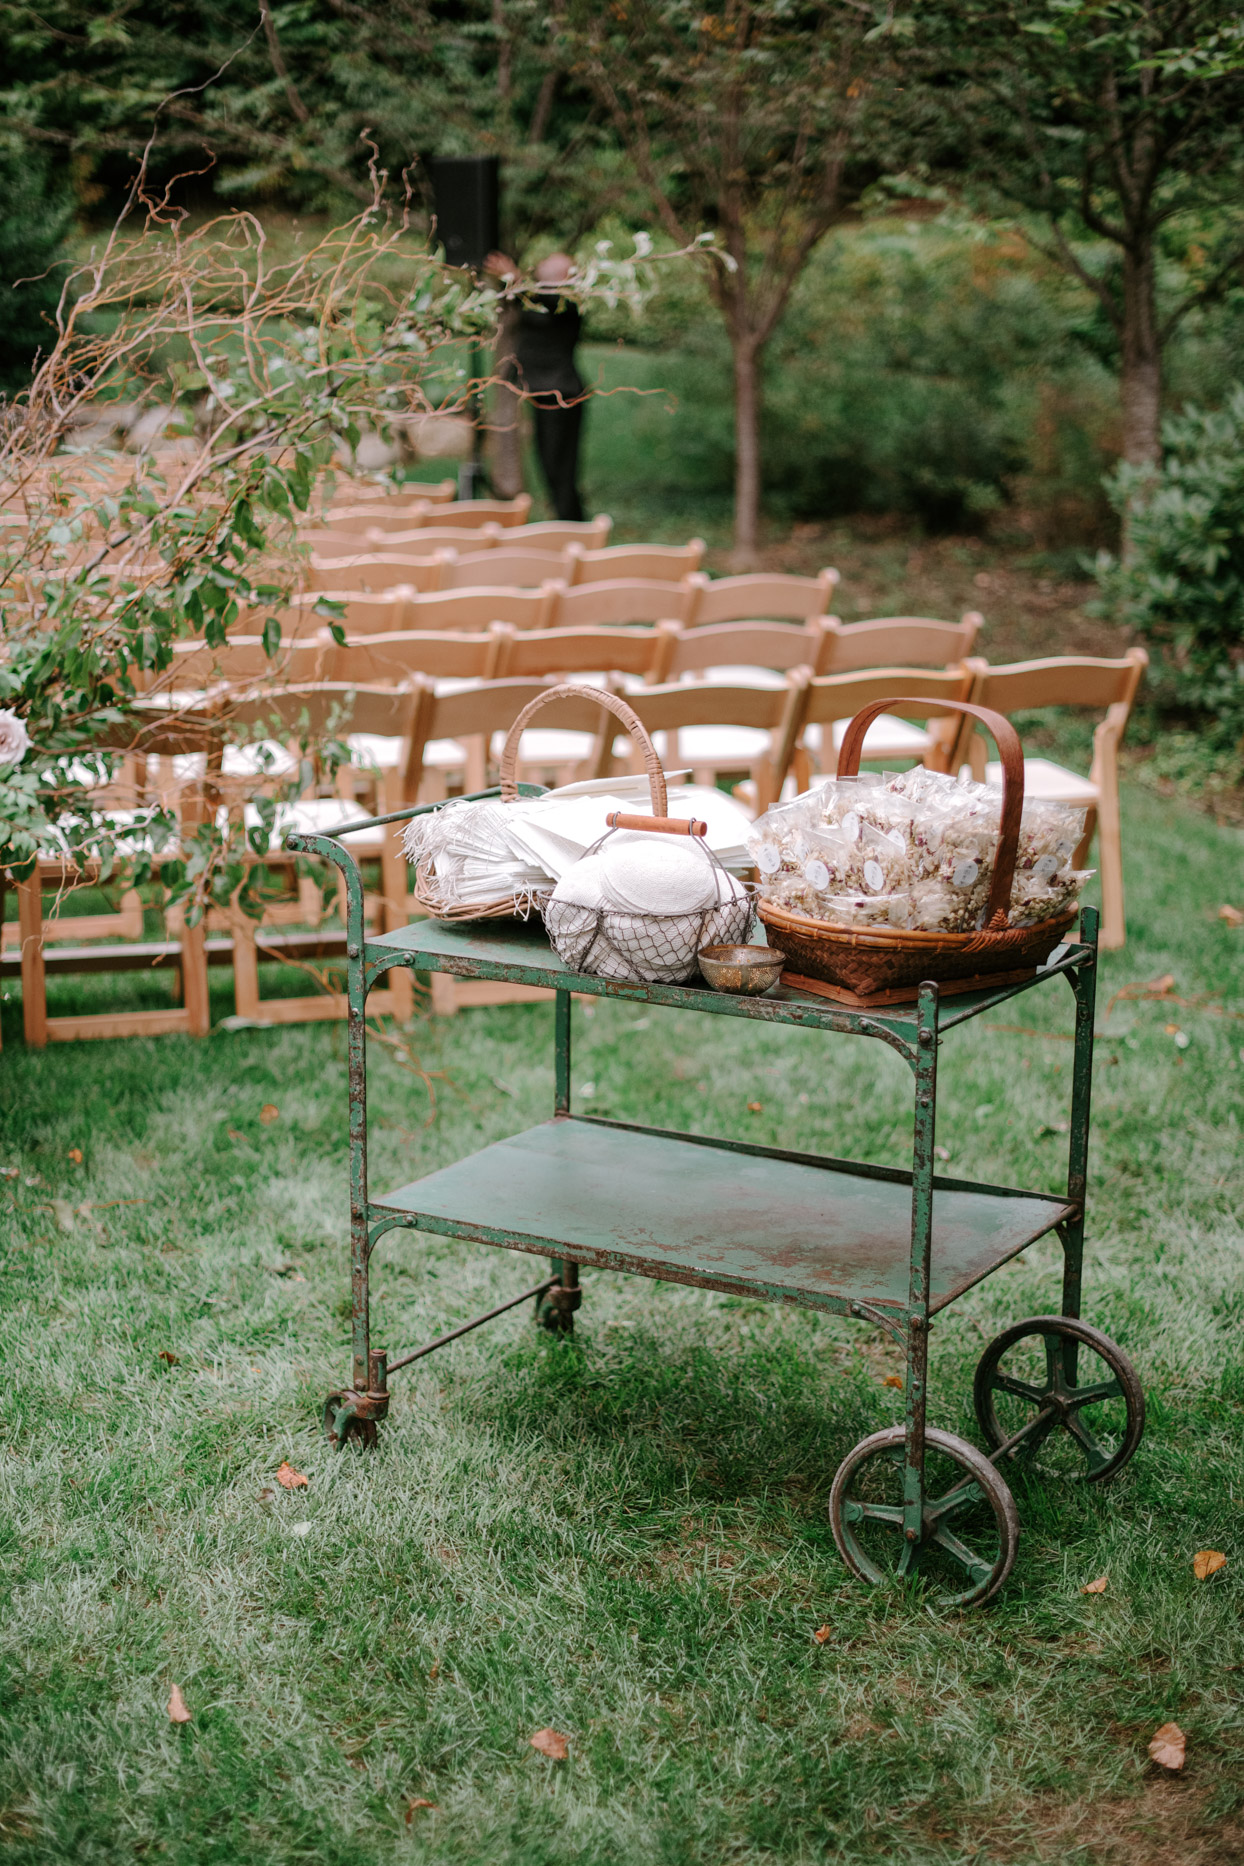 antique rustic cart sitting at outdoor ceremony with yarmulkes and petals